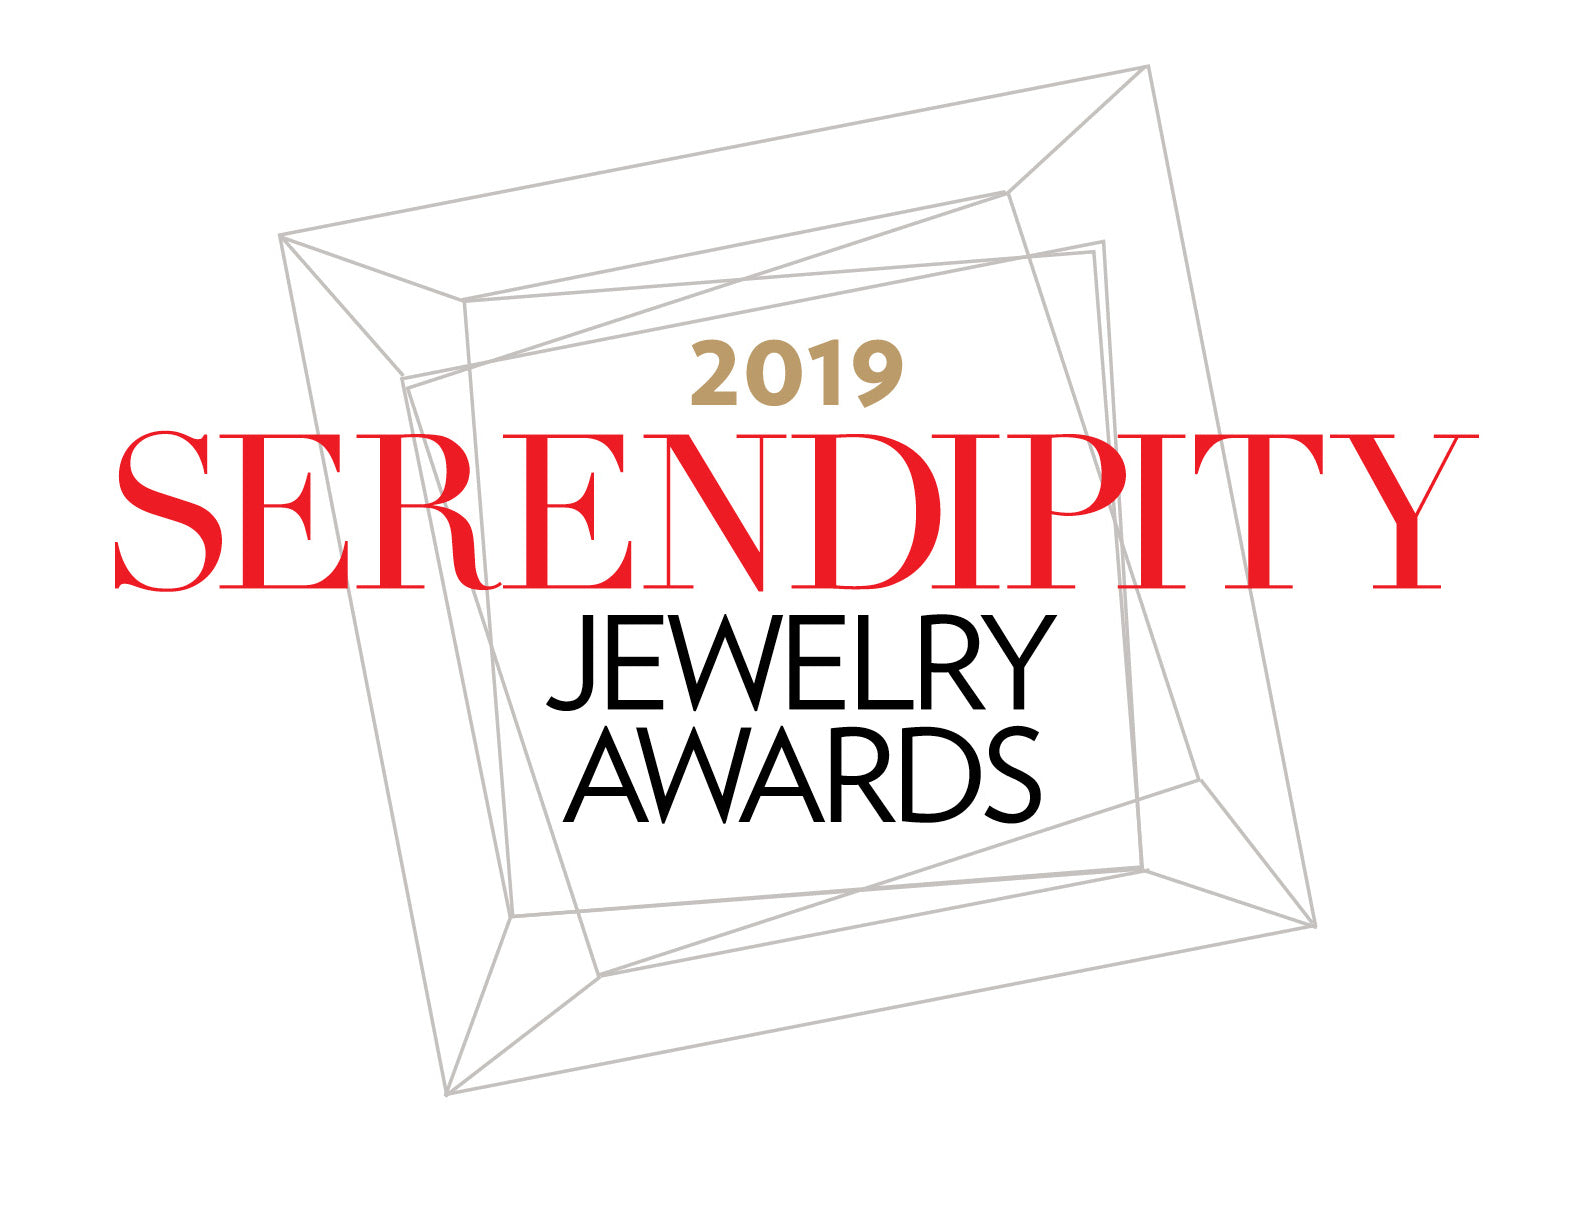 Meet the Winners of the 2019 Serendipity Jewelry Awards